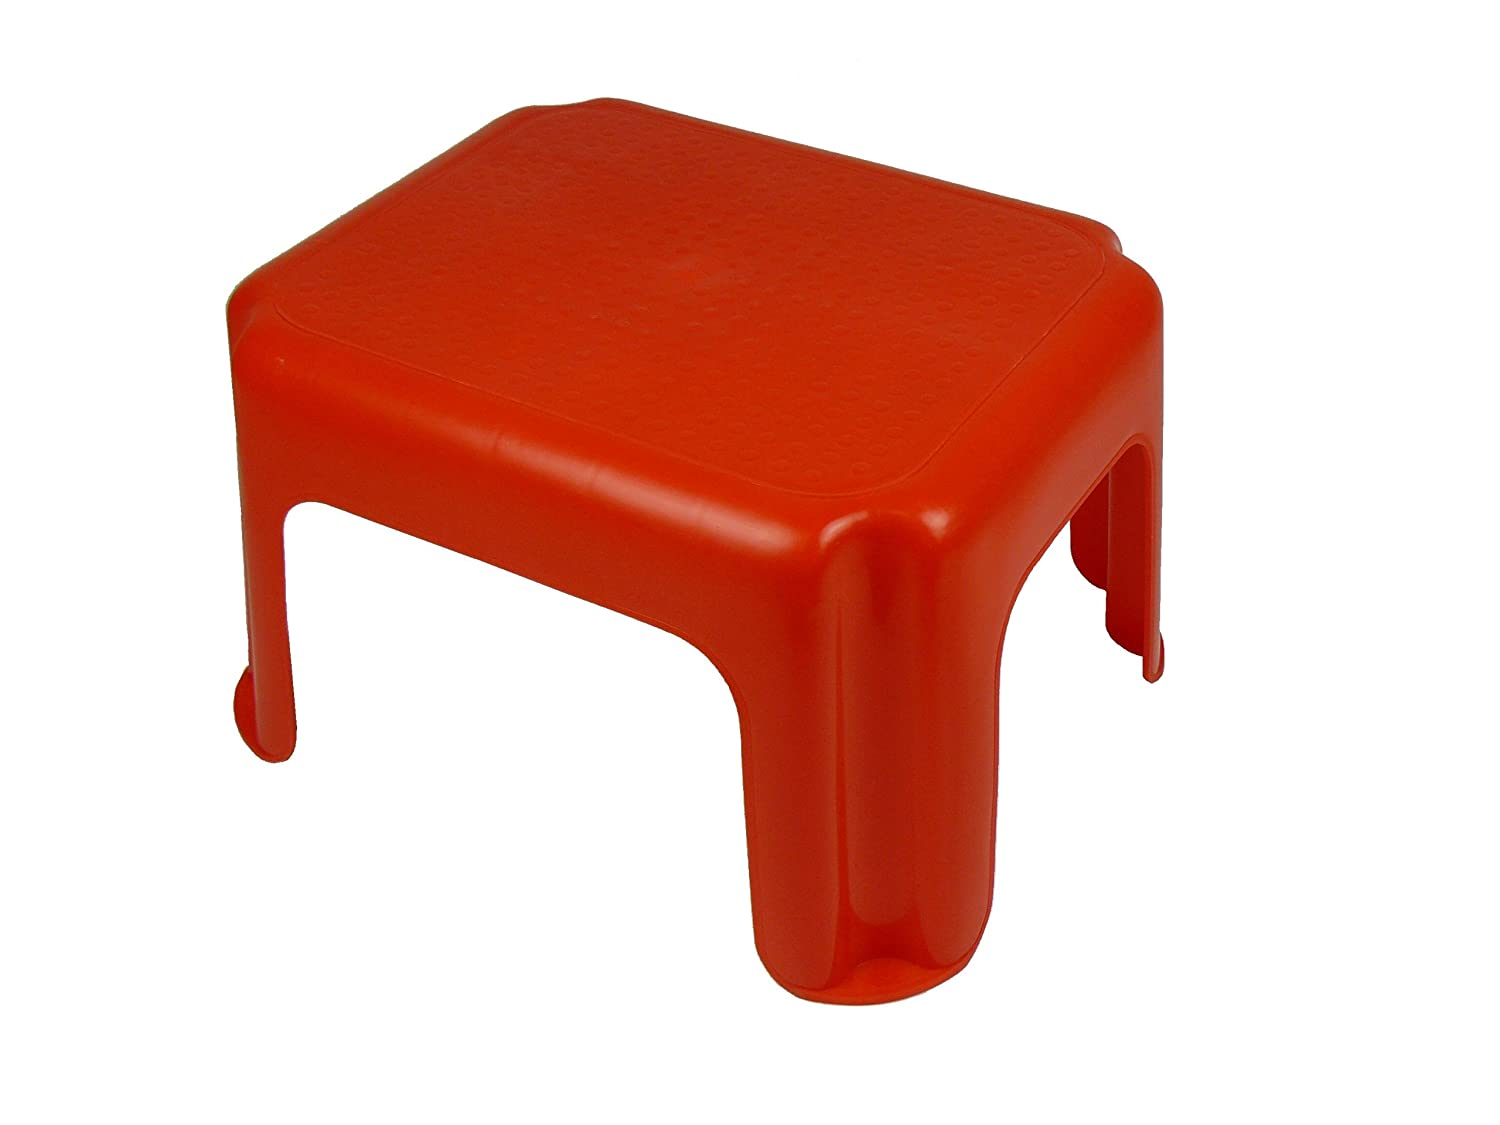 sc 1 th 194 : red kitchen step stool - islam-shia.org